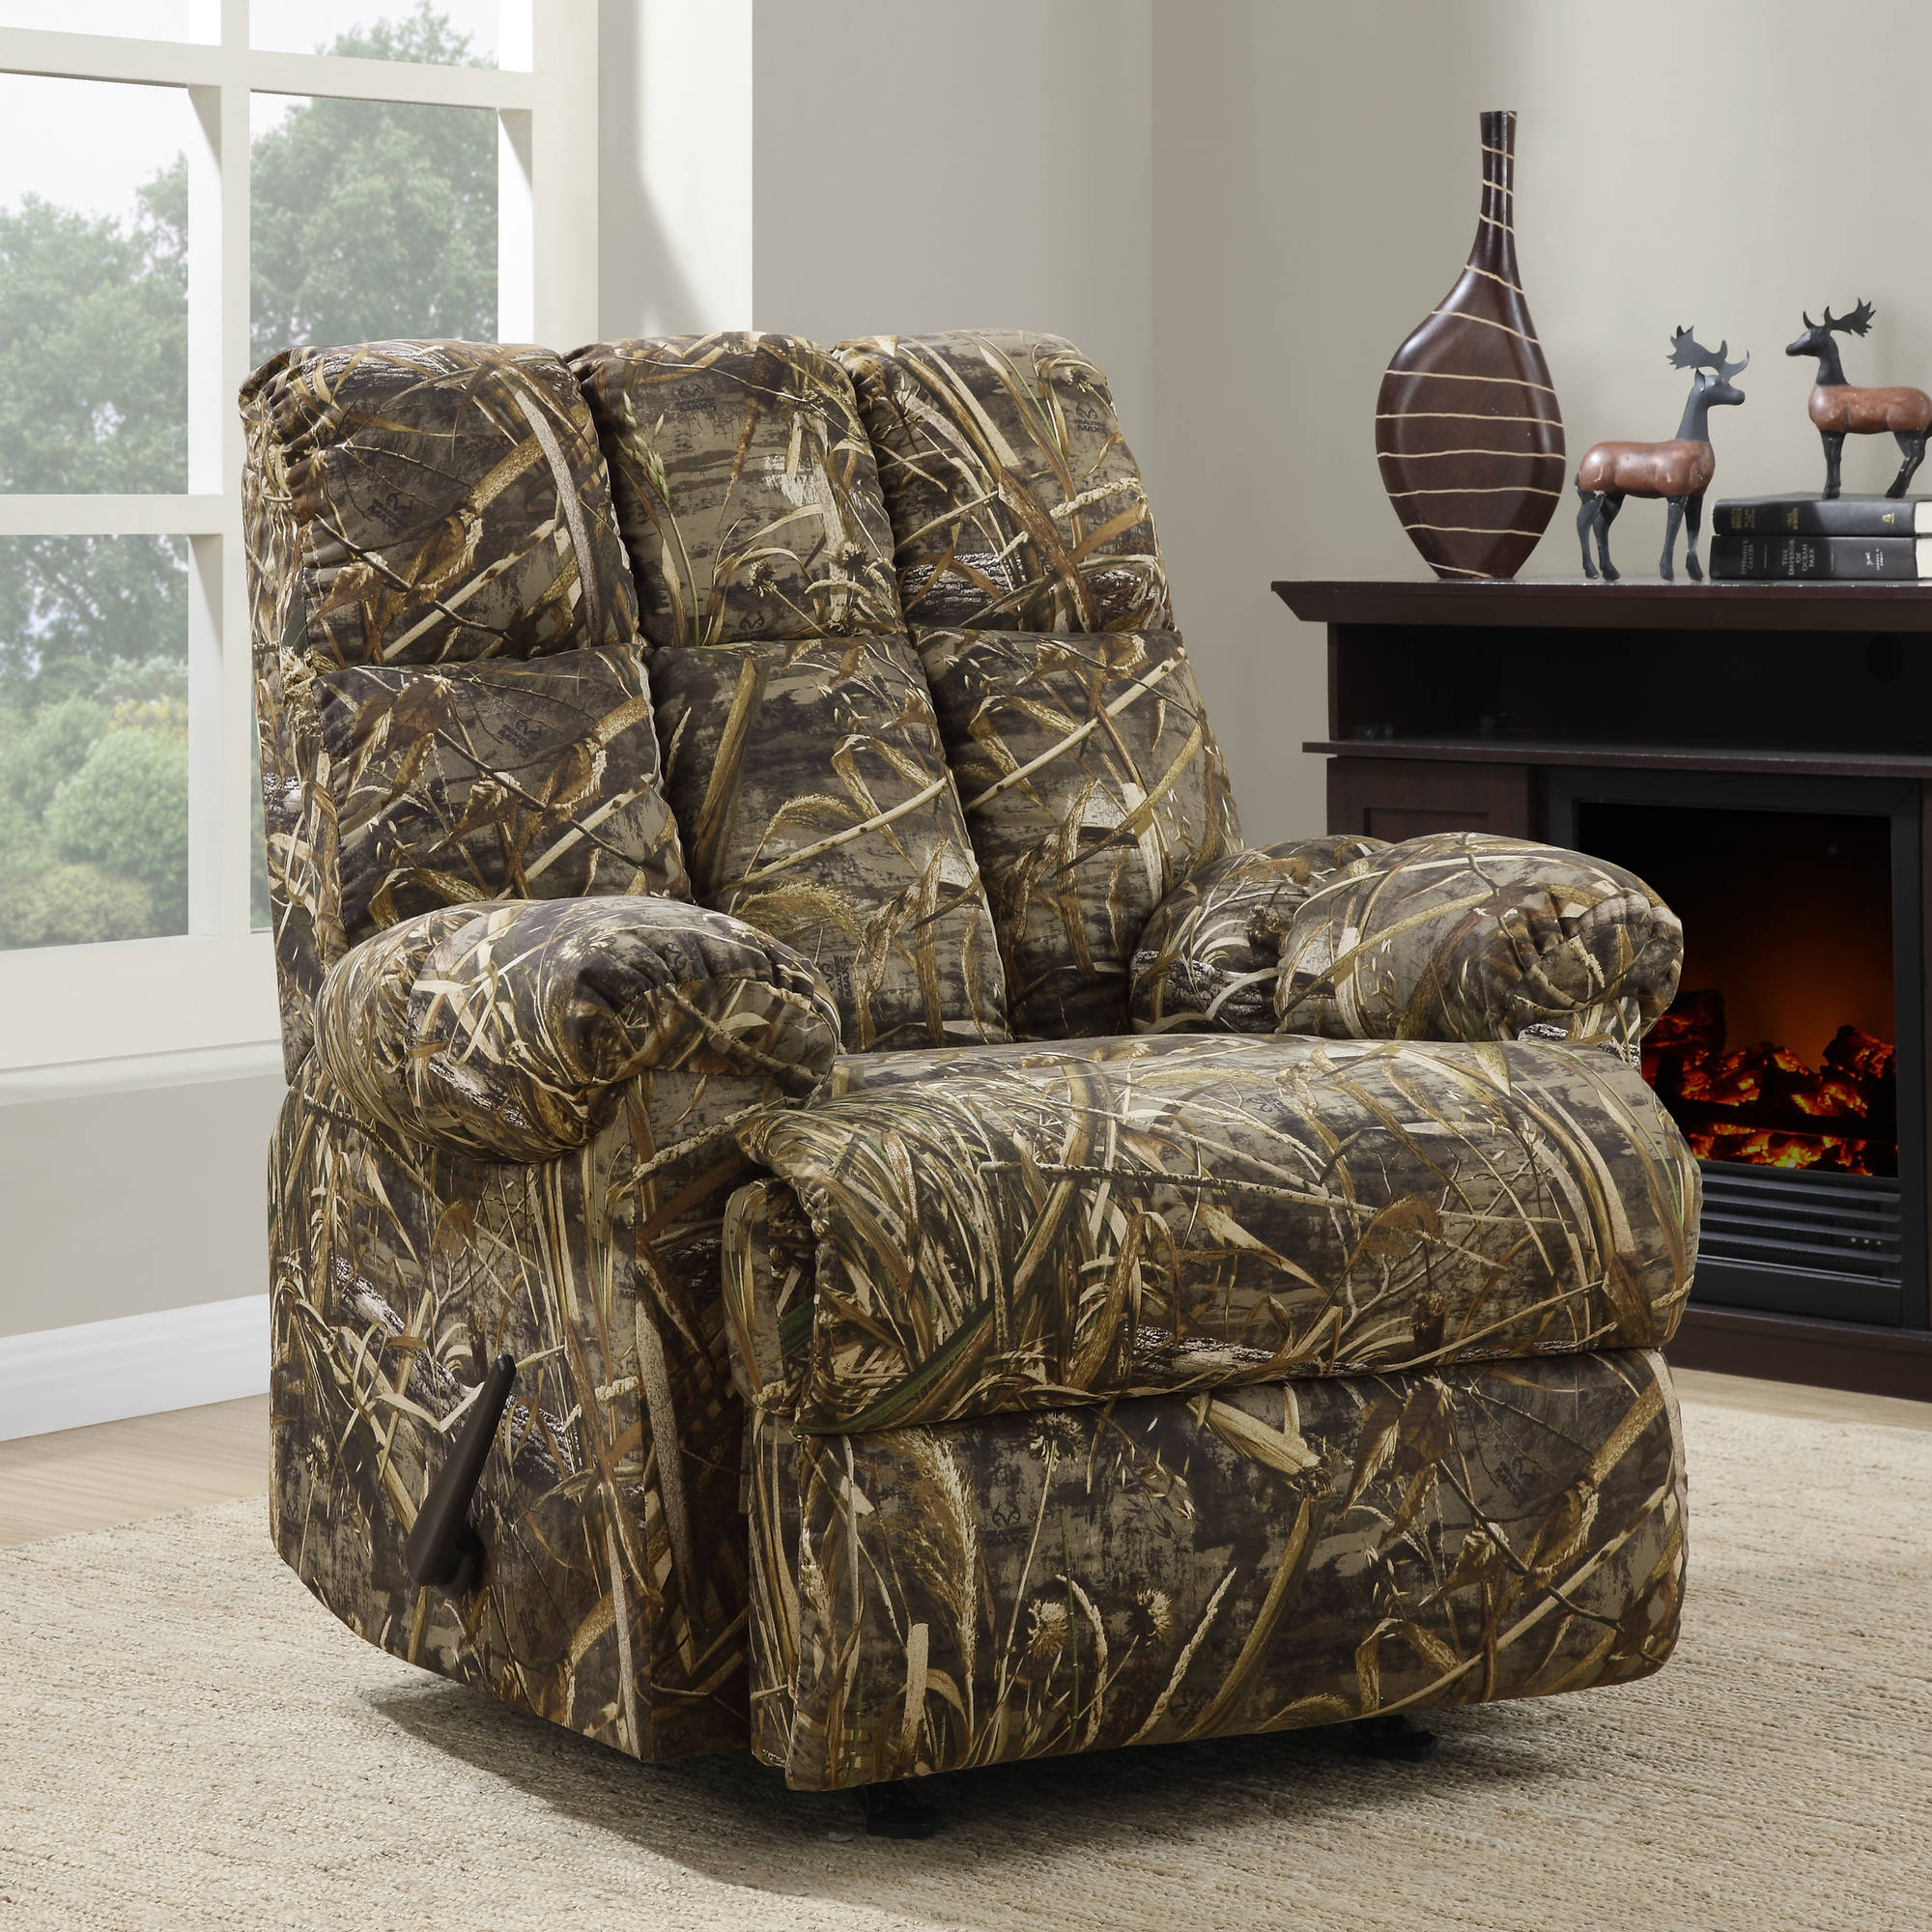 rocker and recliner chair barrel swivel chairs rustic camouflage man cave cabin furniture da6314frr